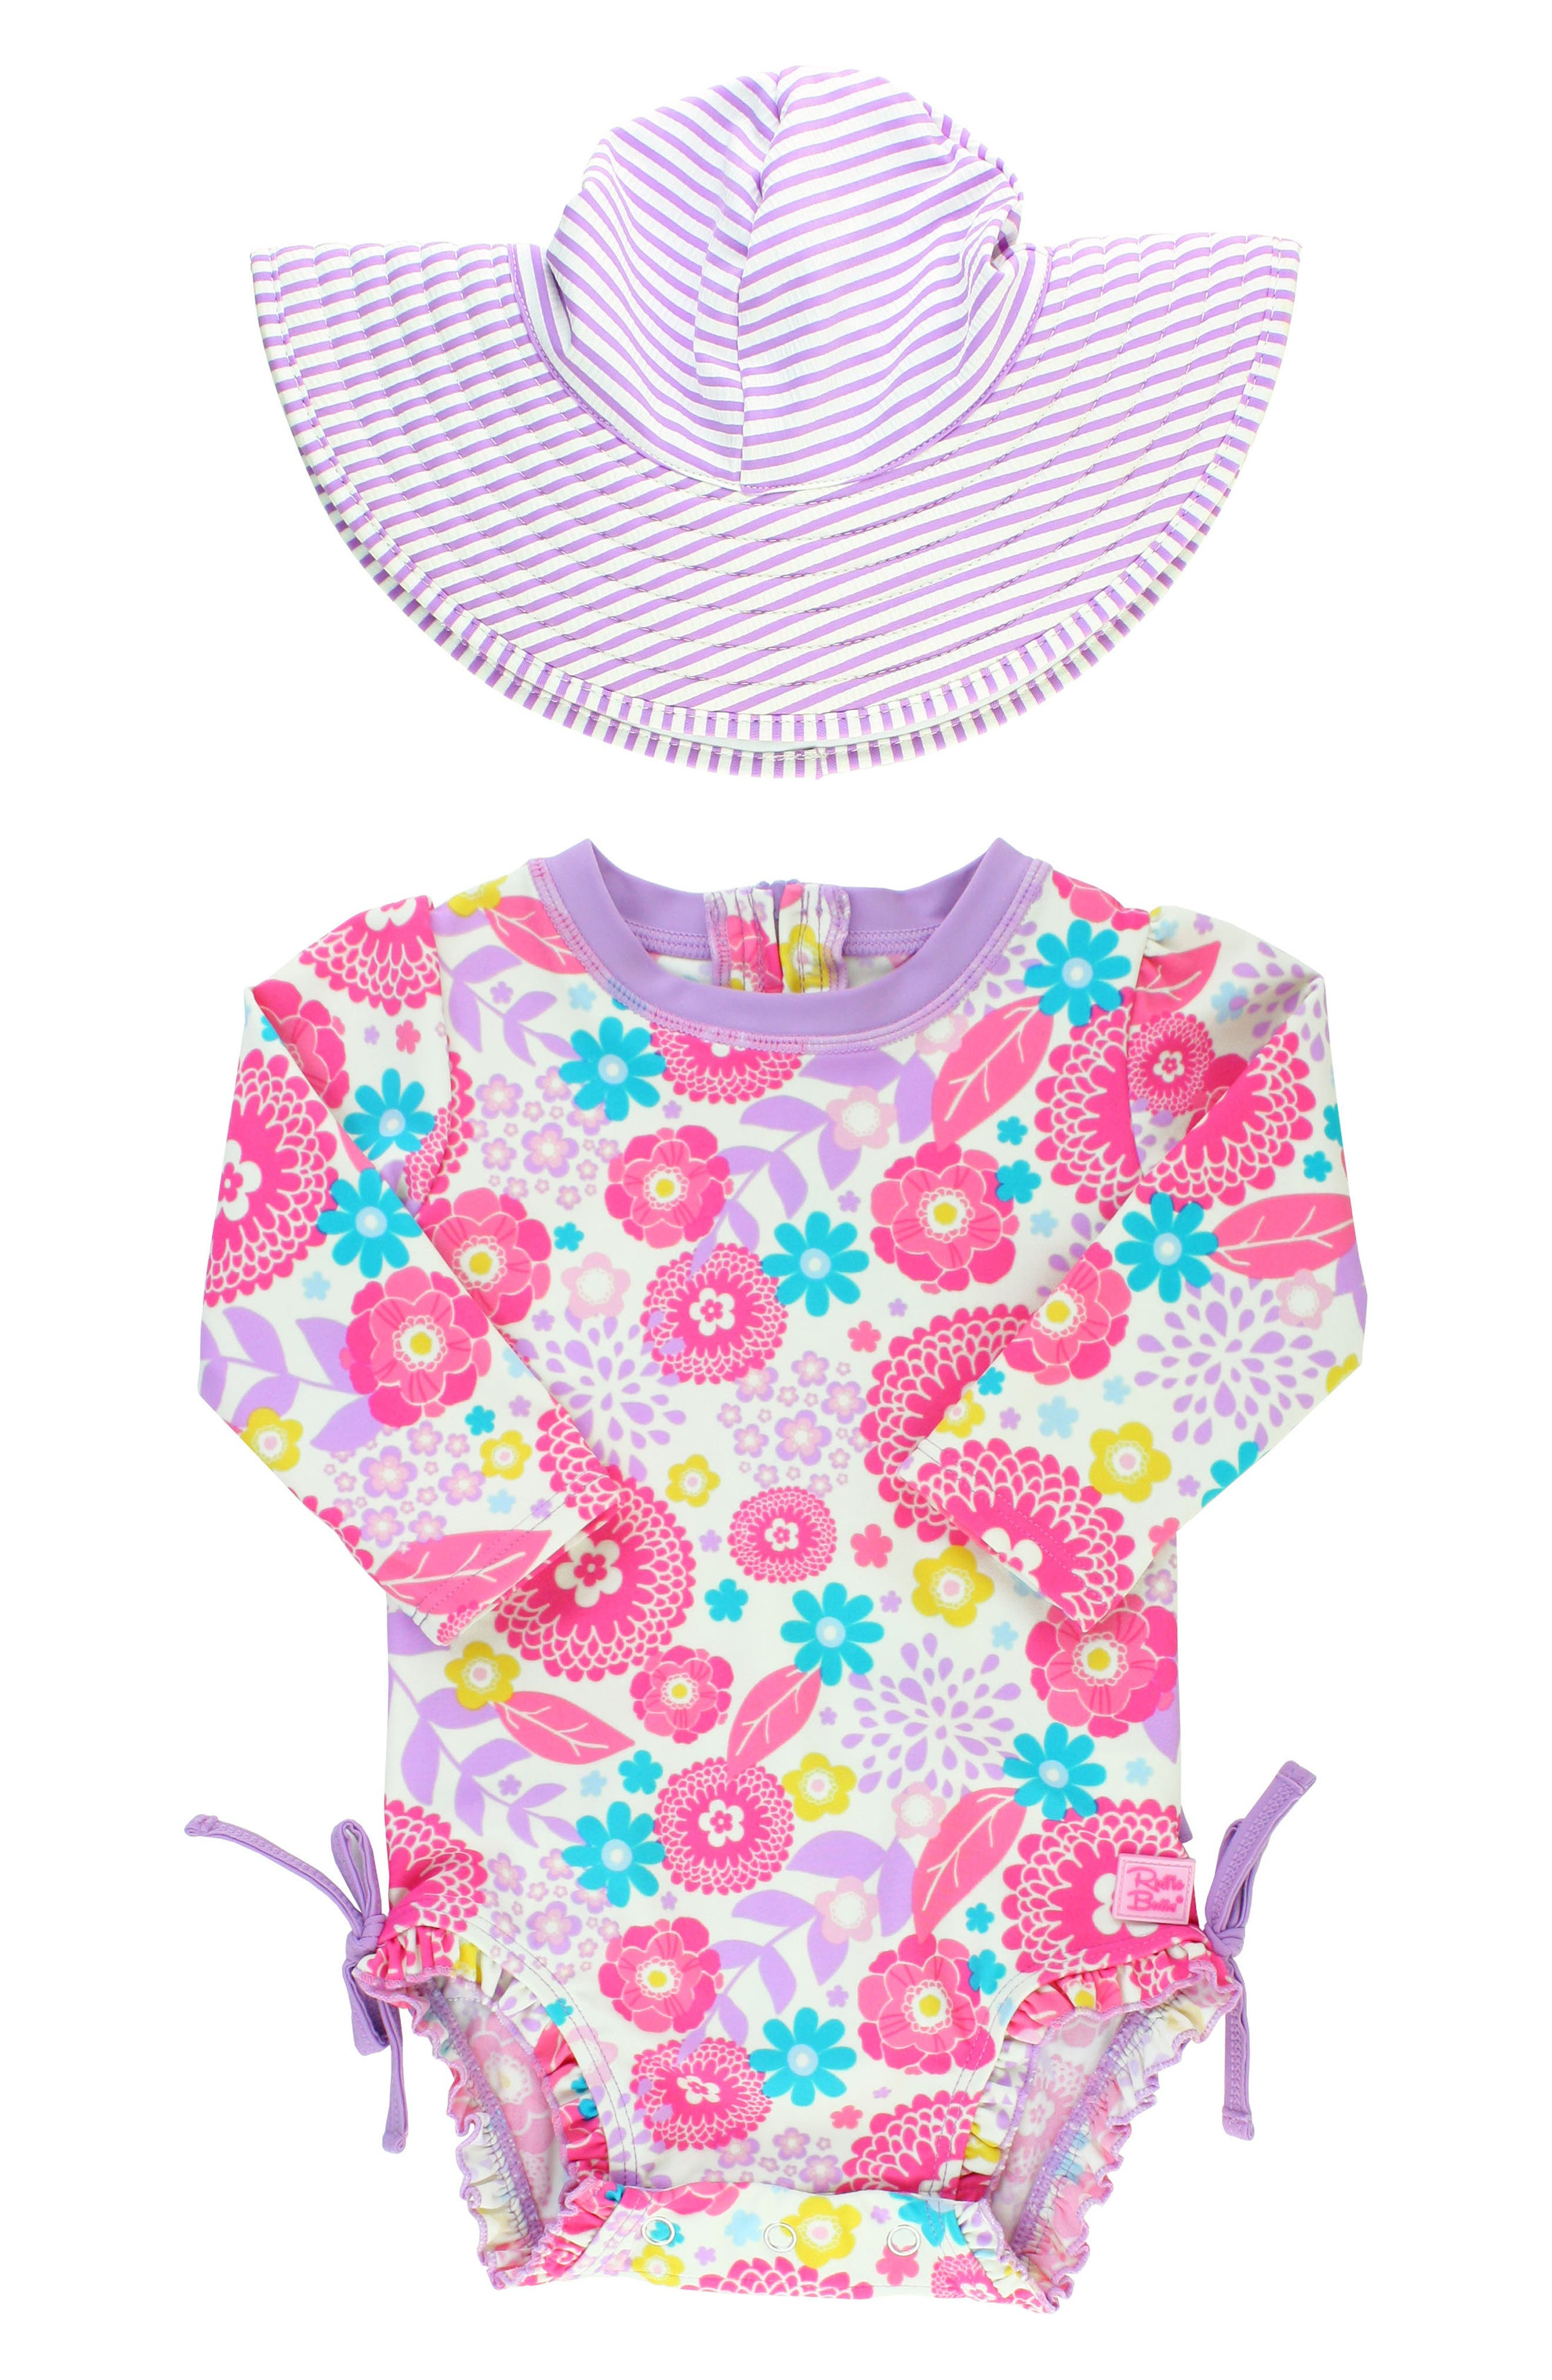 Blooming Buttercups One-Piece Rashguard Swimsuit & Hat Set,                             Main thumbnail 1, color,                             540